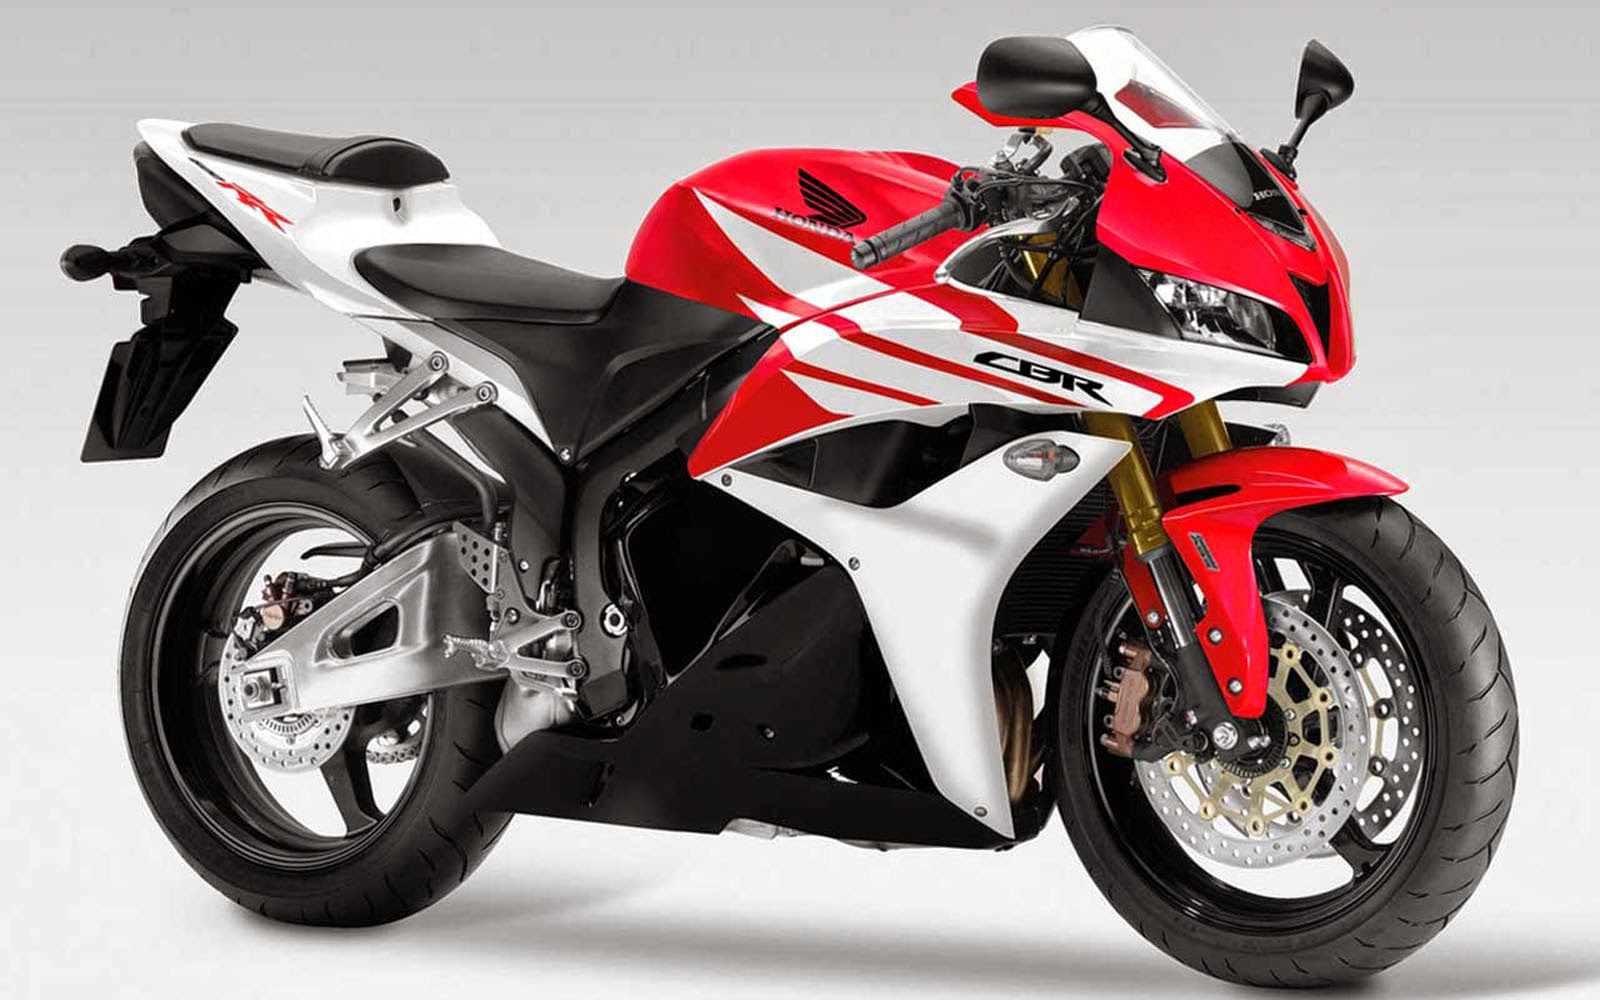 wallpapers honda cbr 600rr